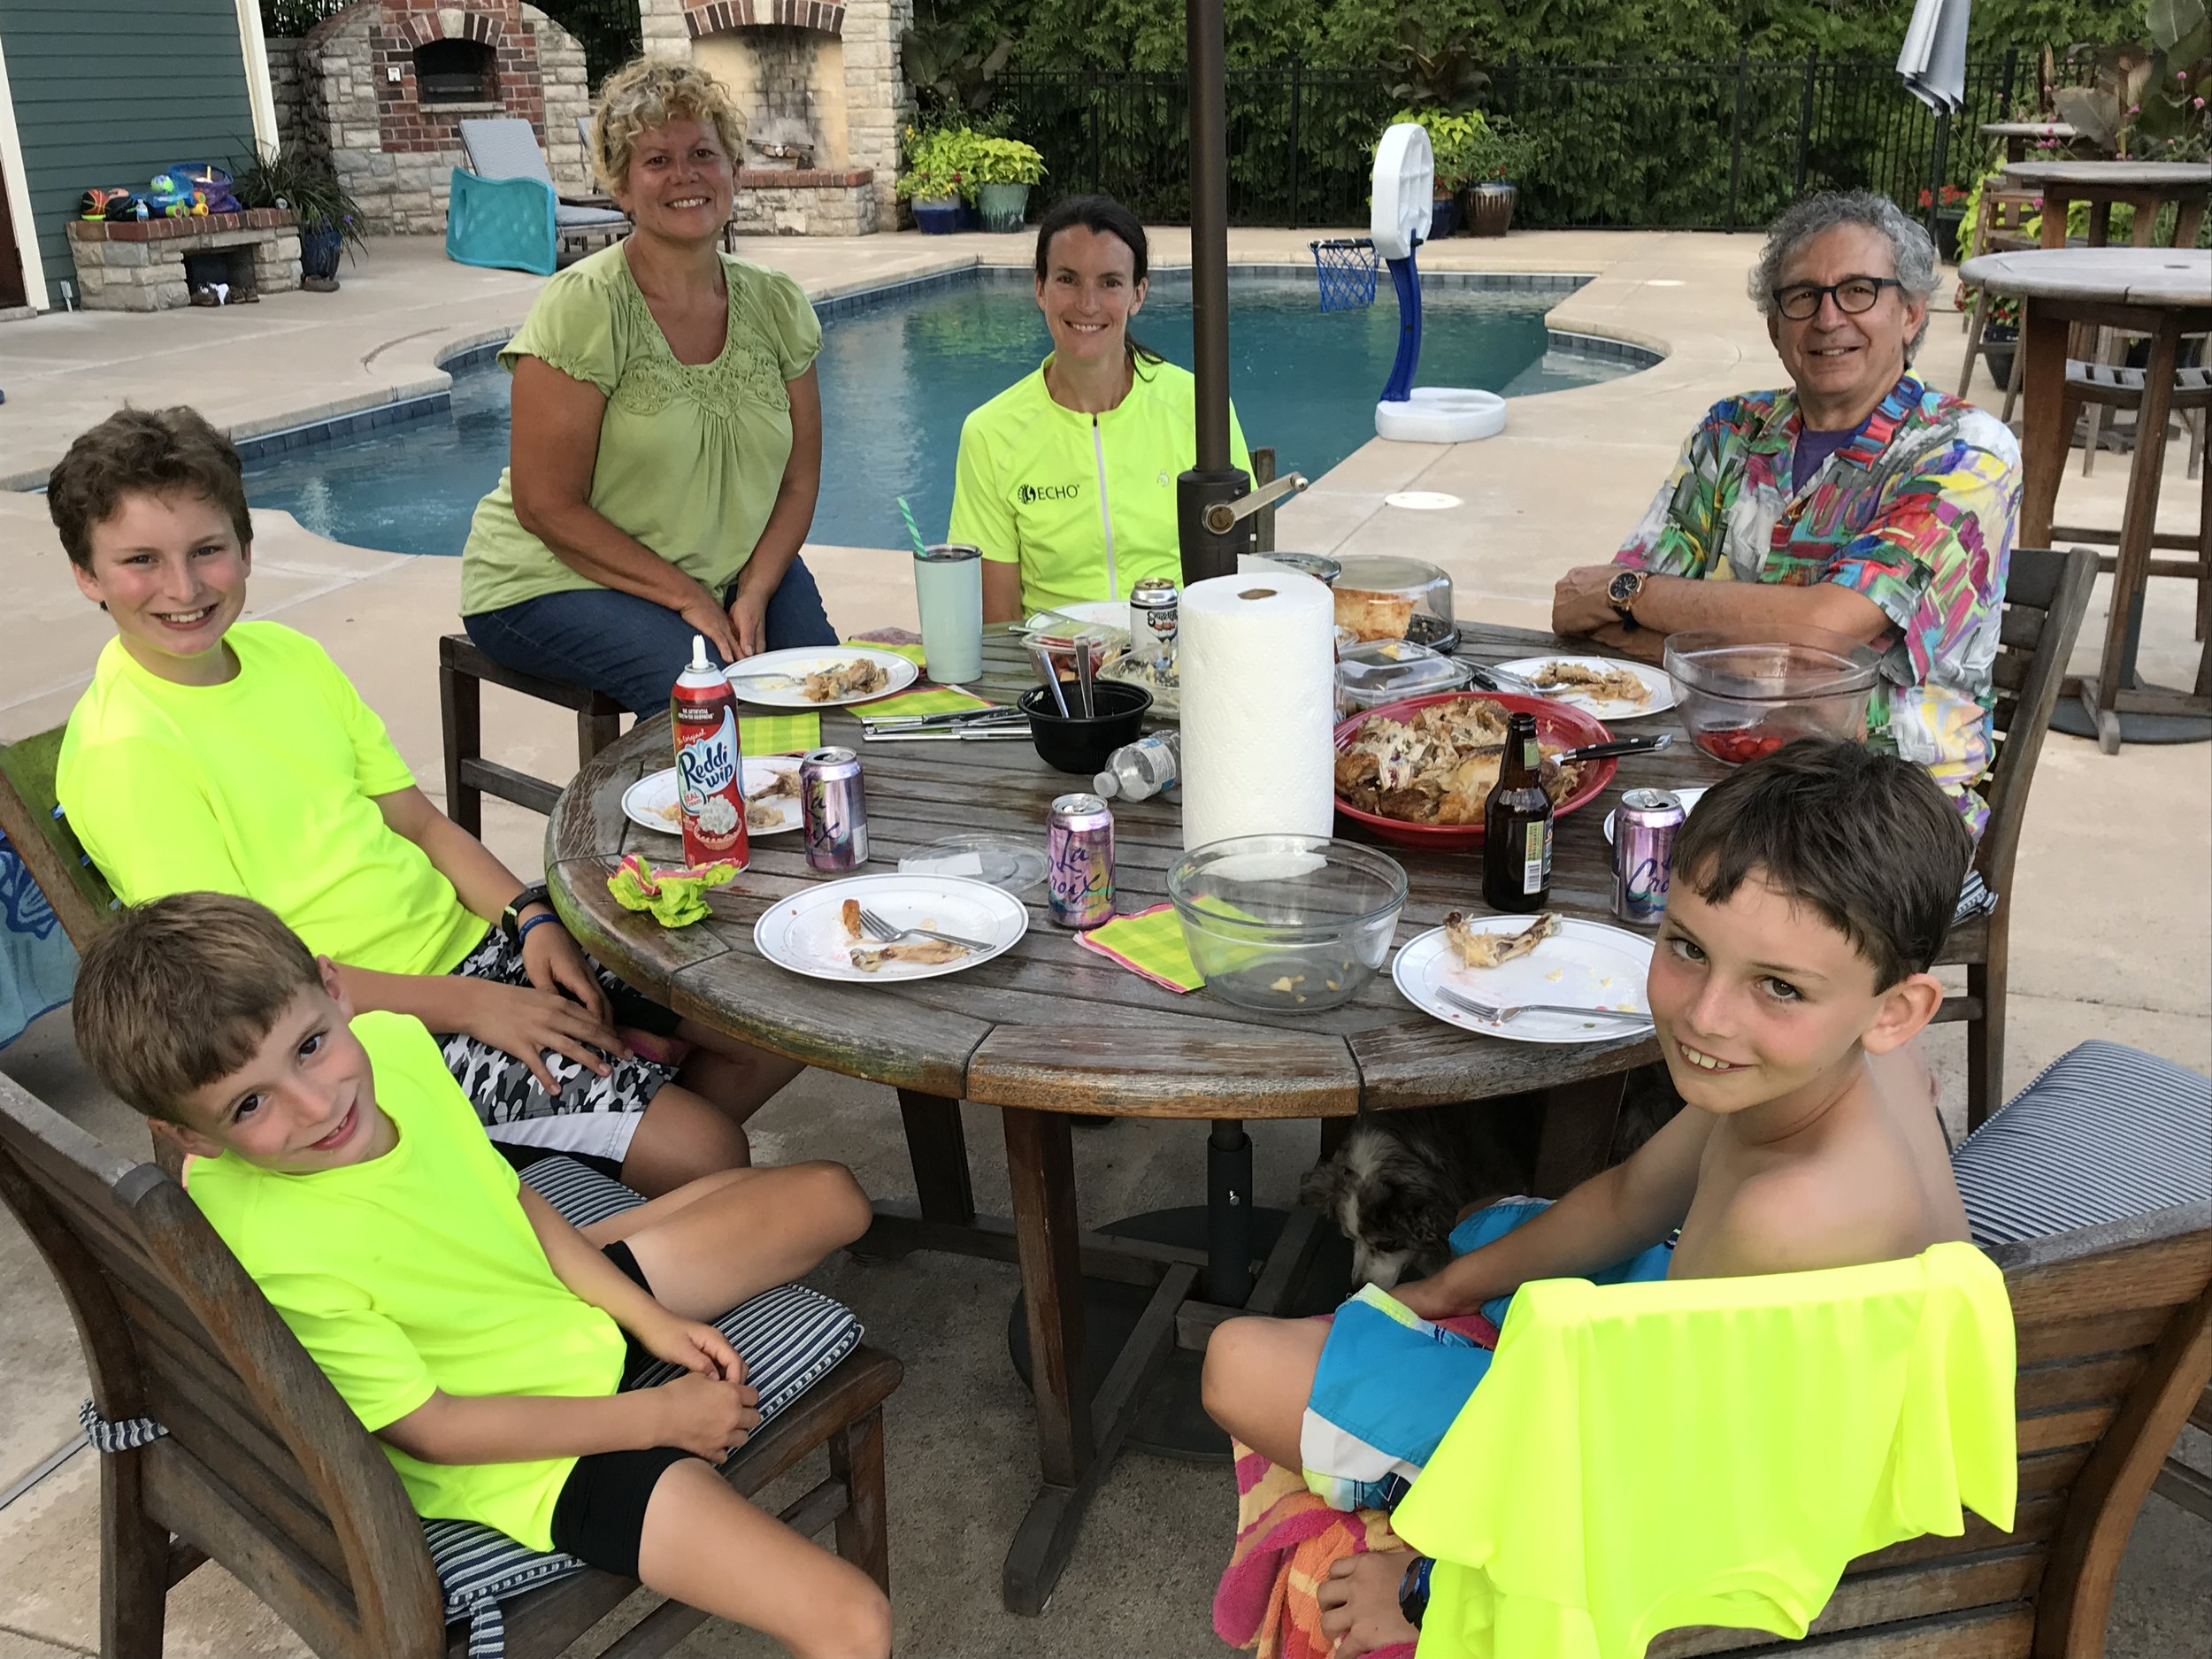 Here we are enjoying a yummy dinner with Cee Jaye and John out by their pool. They were so gracious to pick up some dinner to share with us just before we left Rocheport, MO!